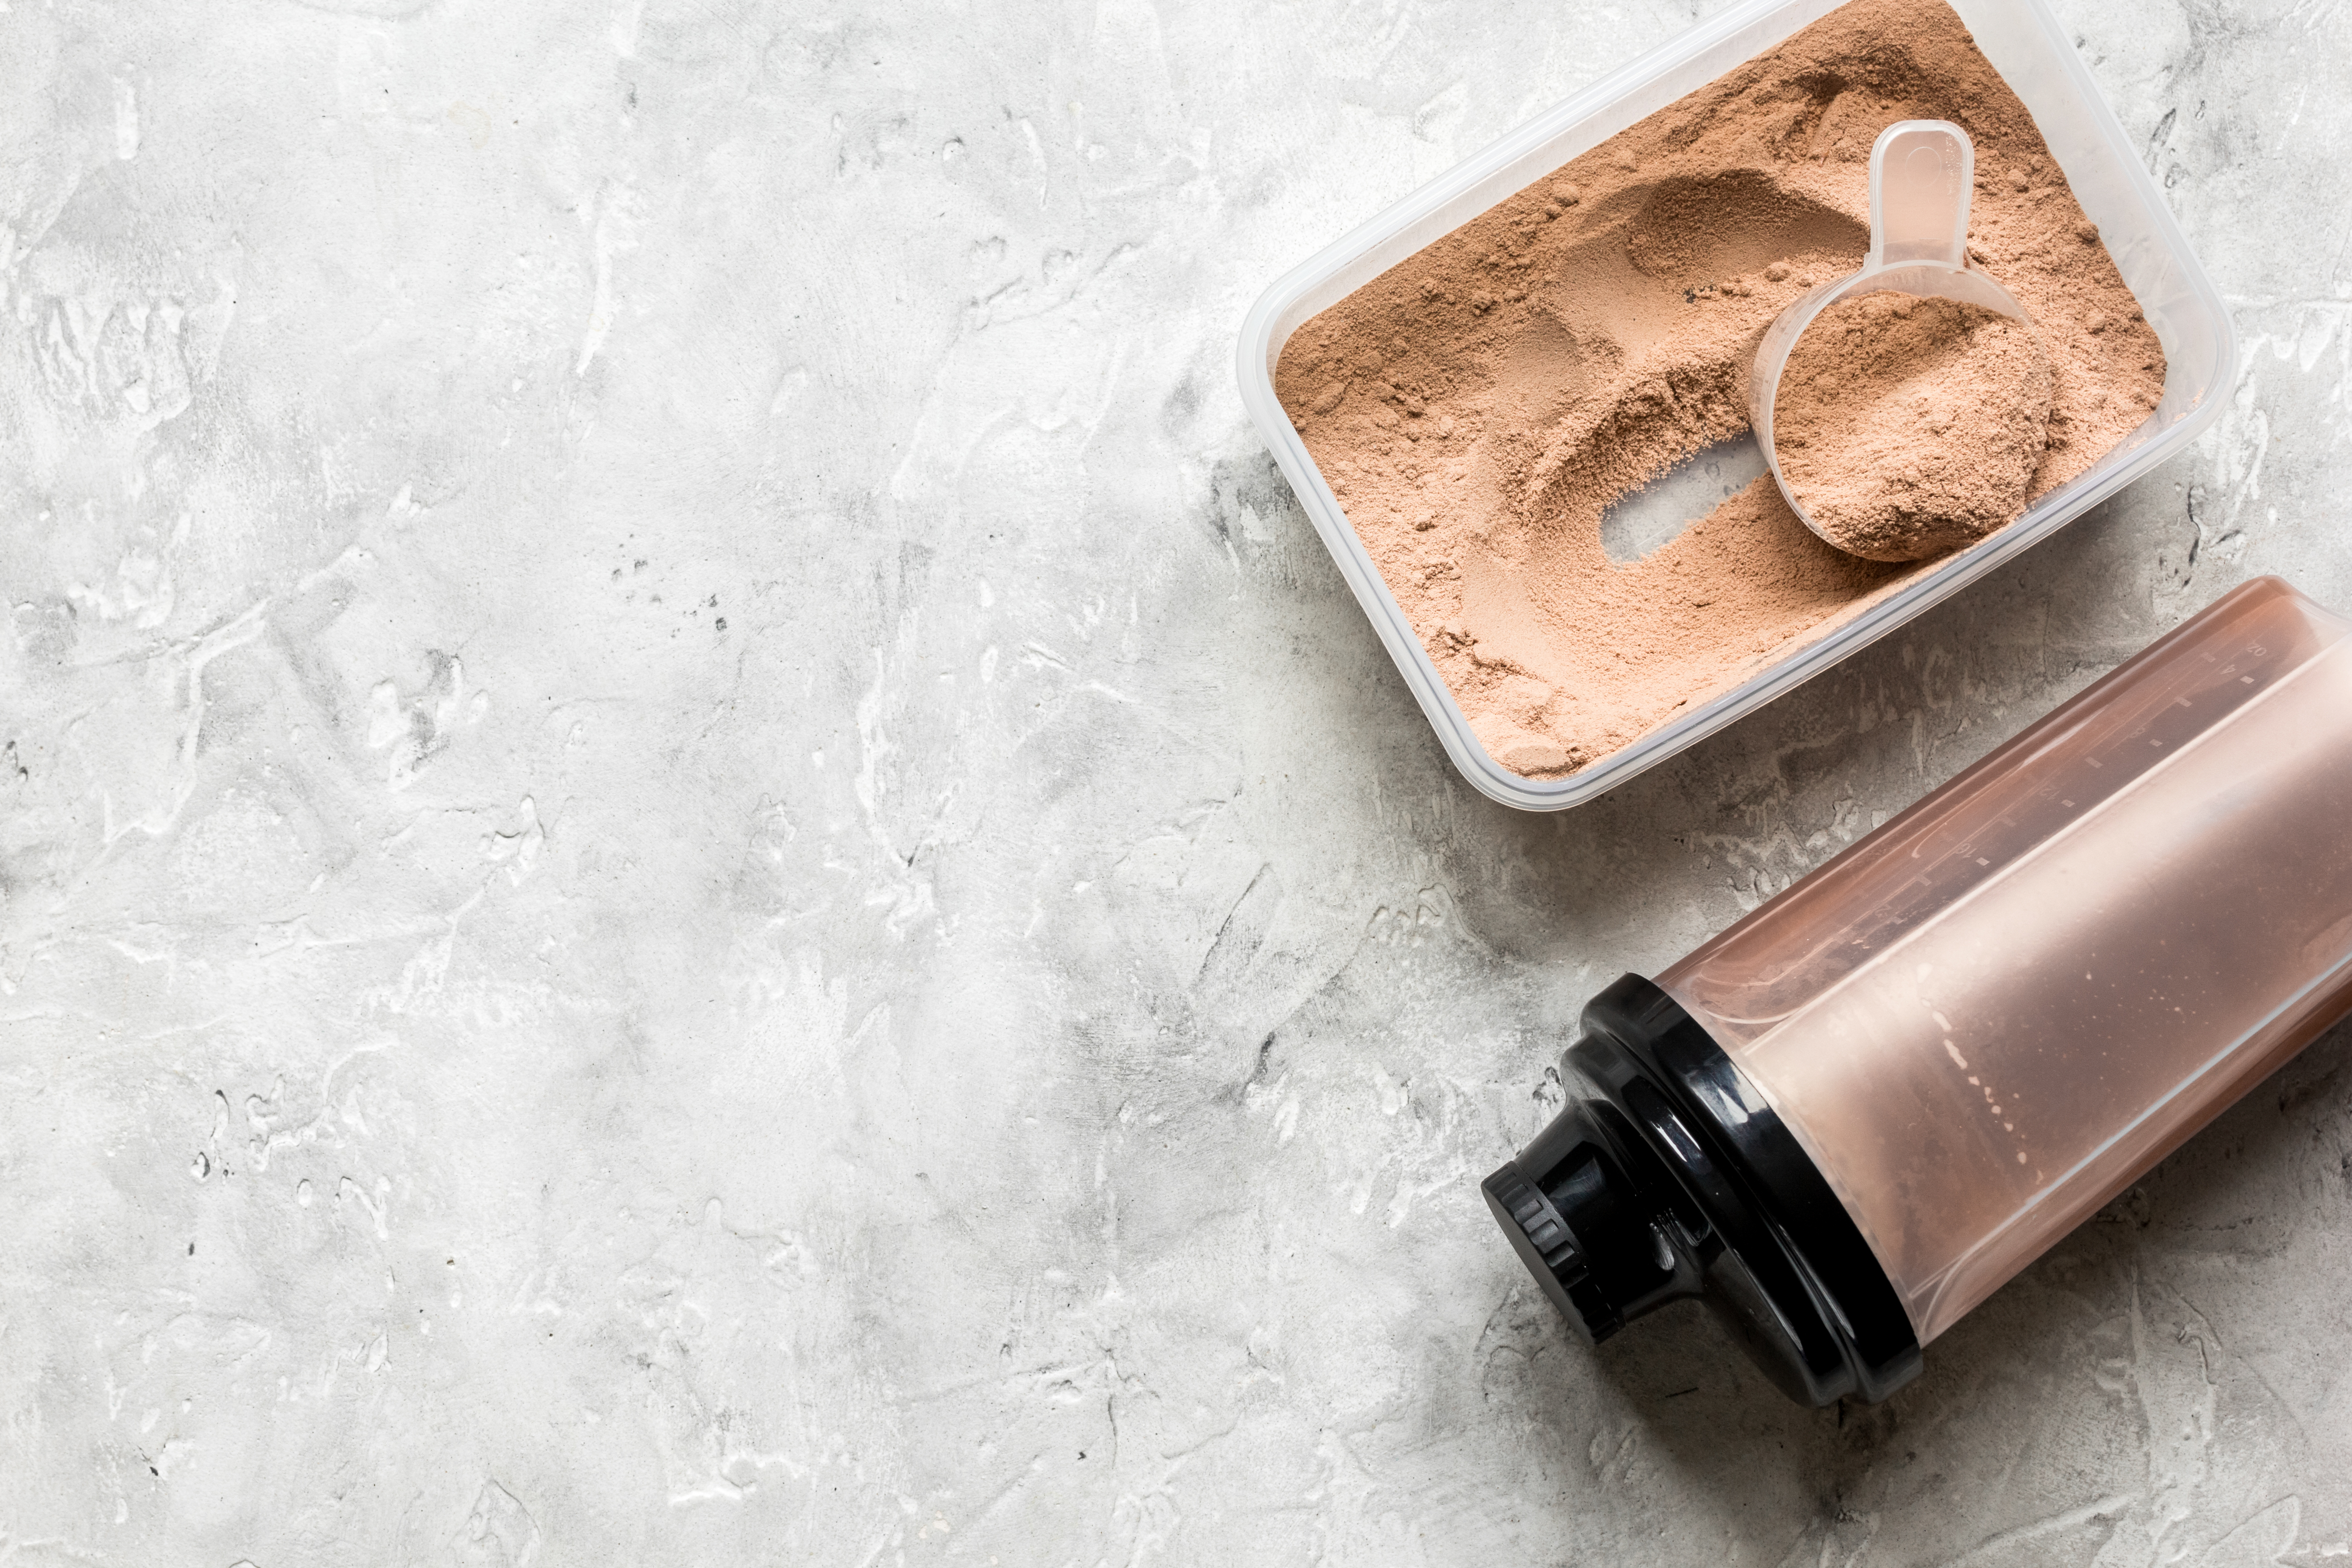 A protein shaker beside a plastic container with protein powder and a scoop in it.